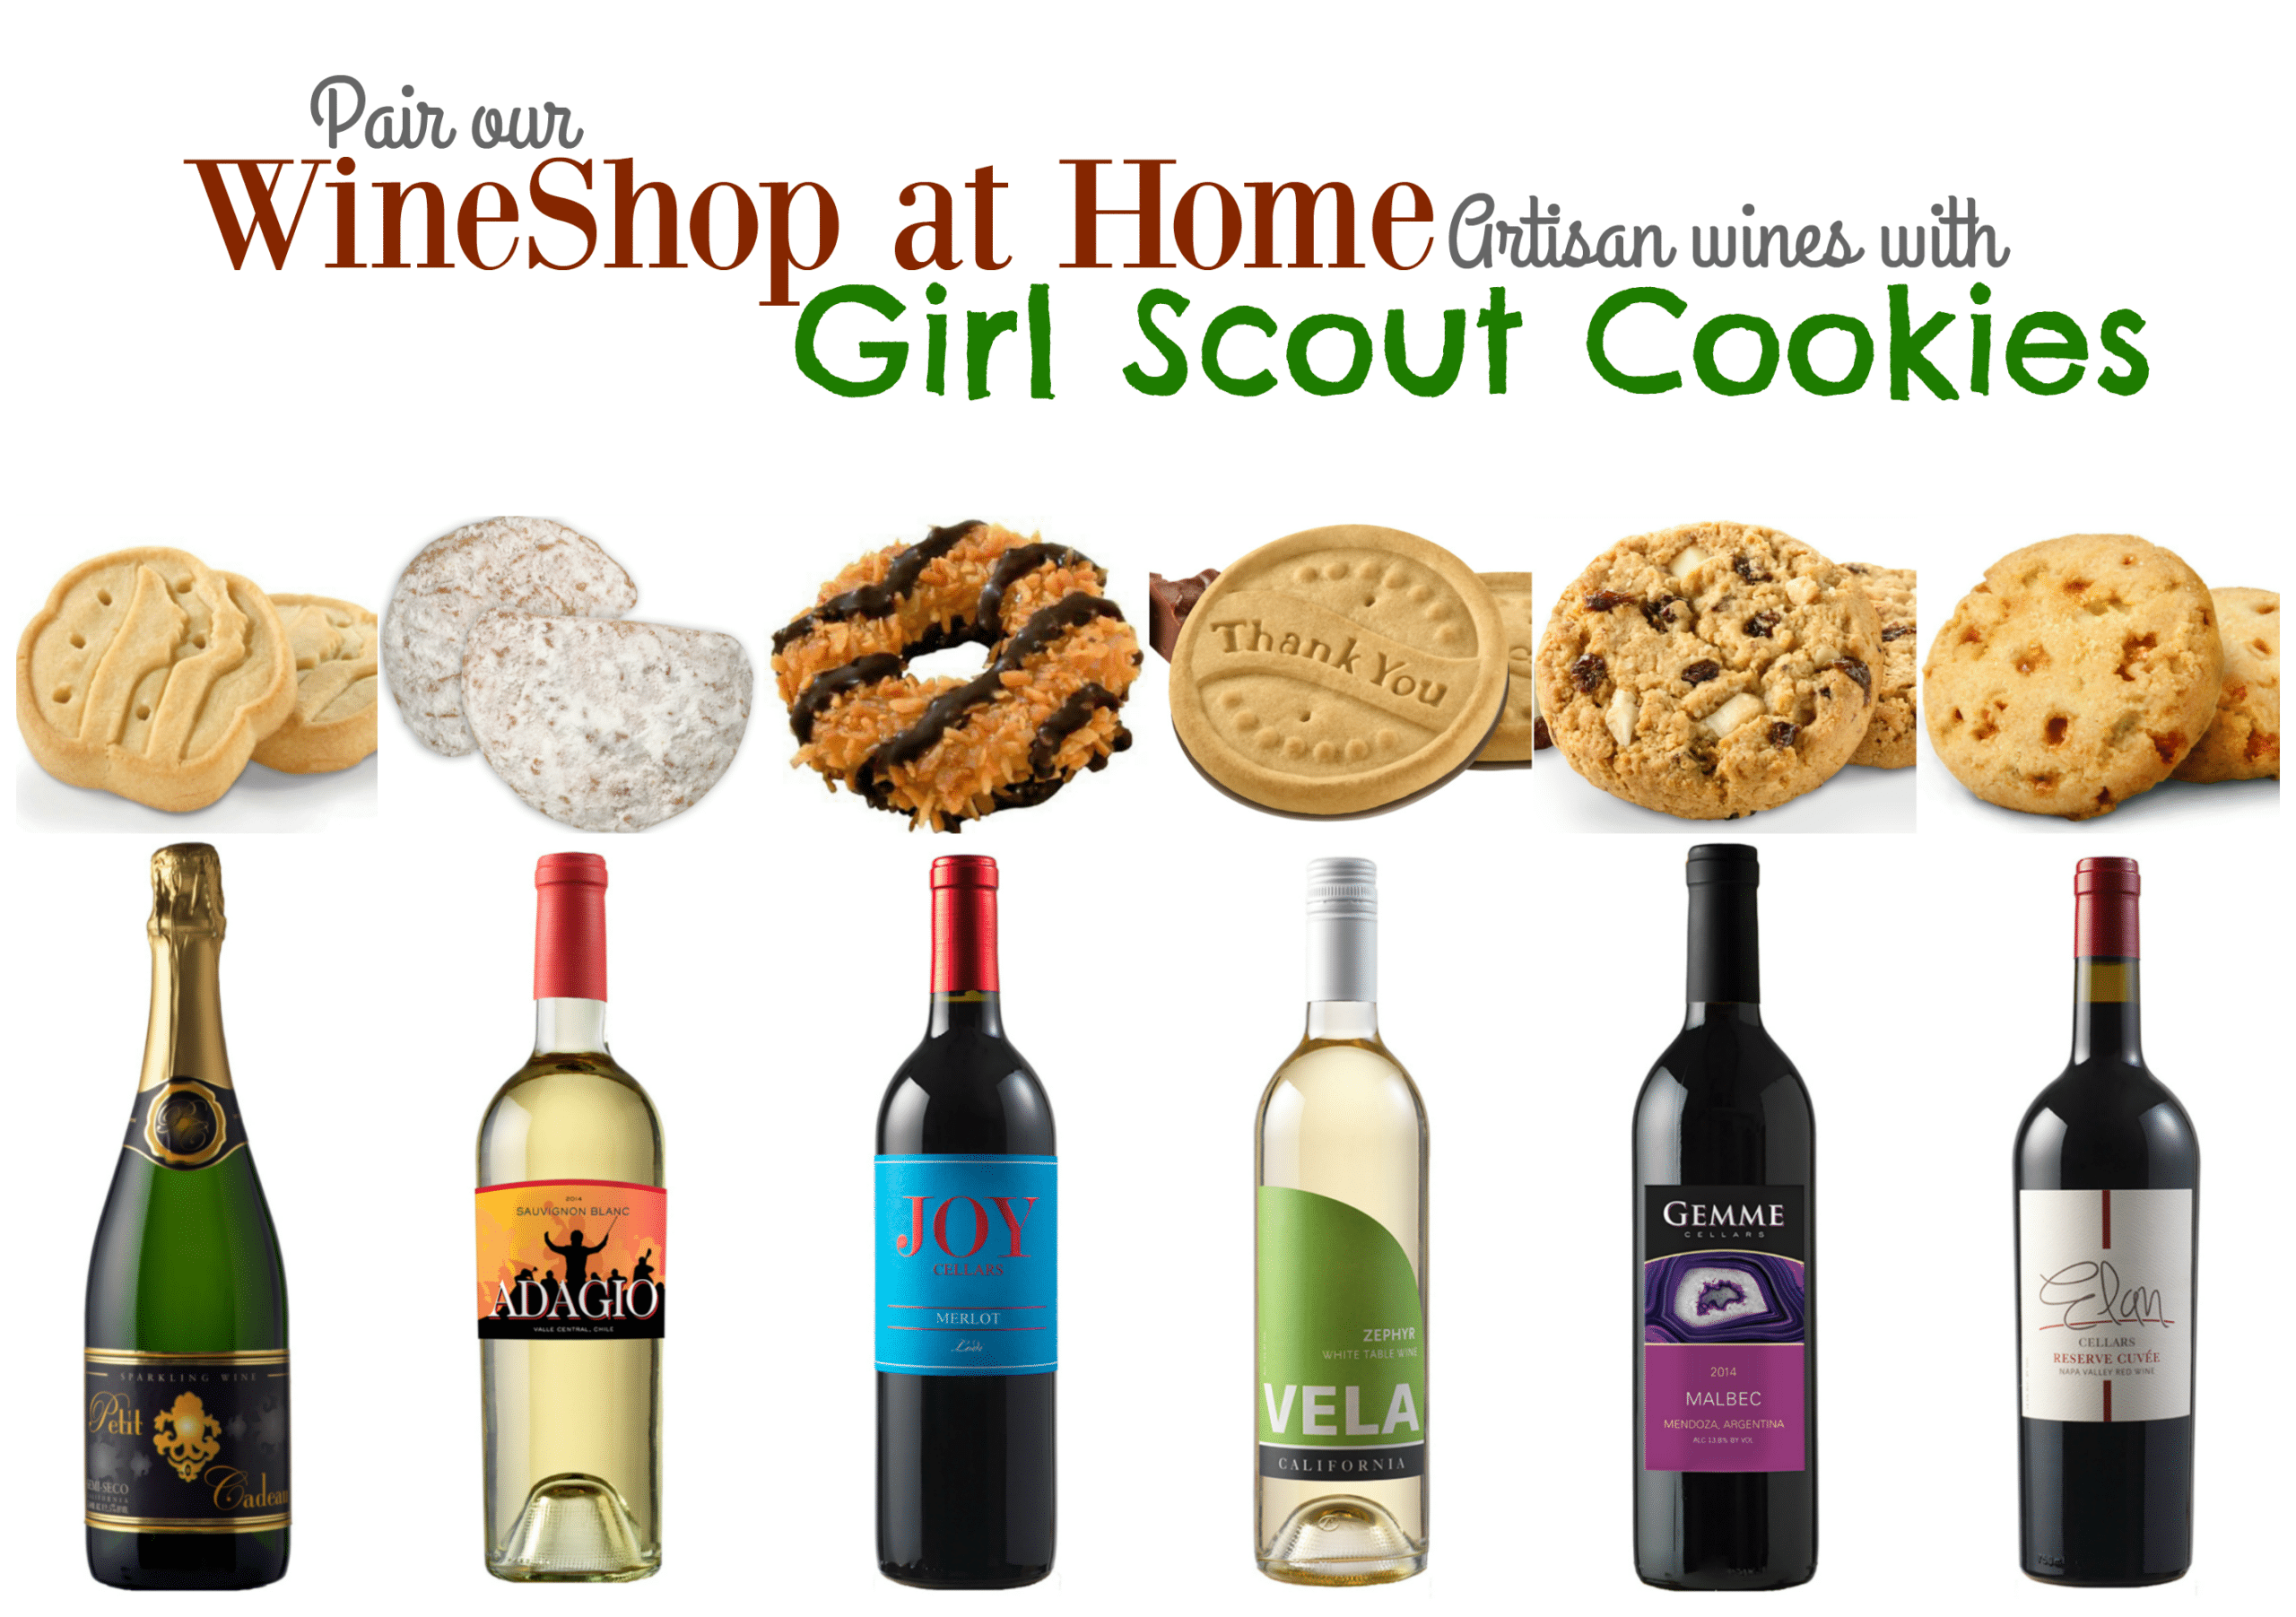 Girl Scout Cookies and WineShop at Home Wine